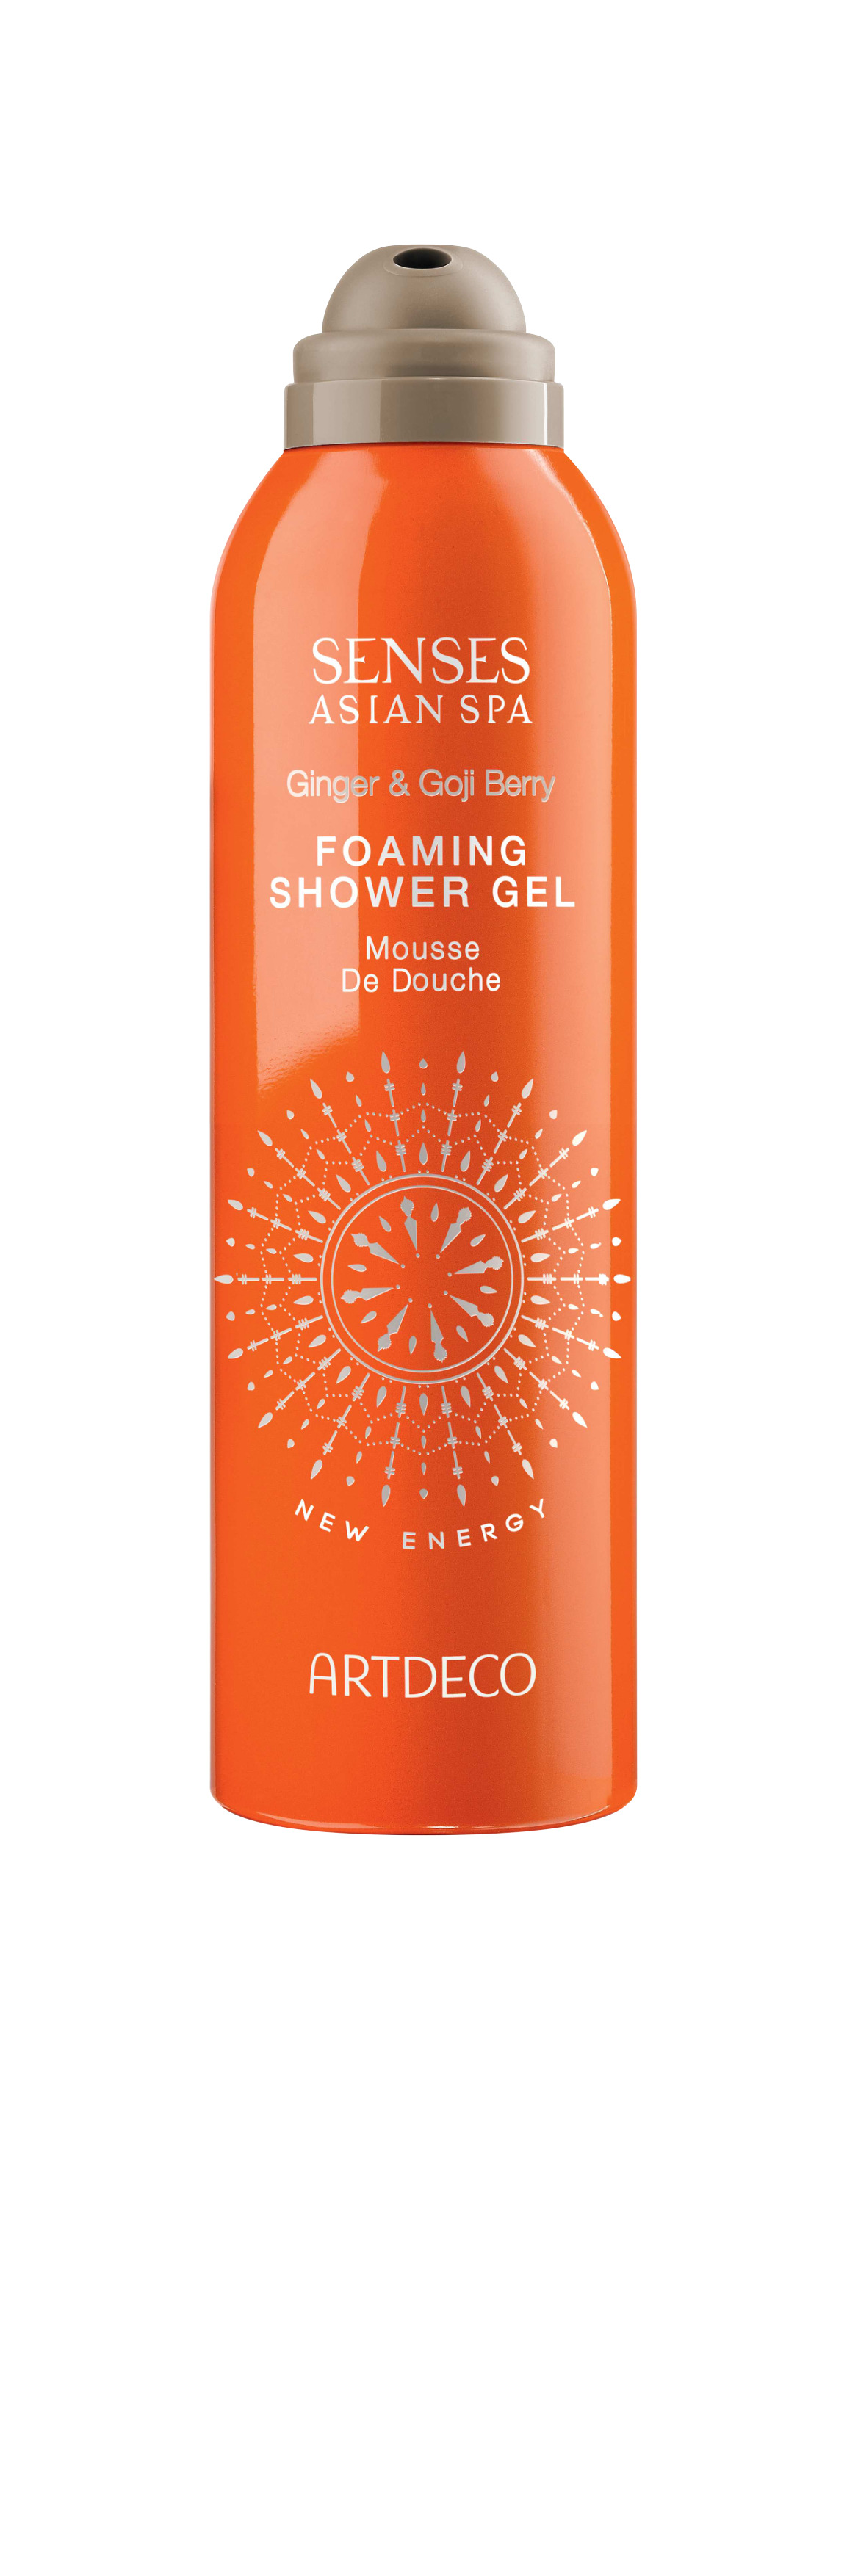 Artdeco гель-пена для душа Foaming shower gel, new energy, 200 мл artdeco artdeco гель лак для ногтей art couture 942 venetian red 10 мл